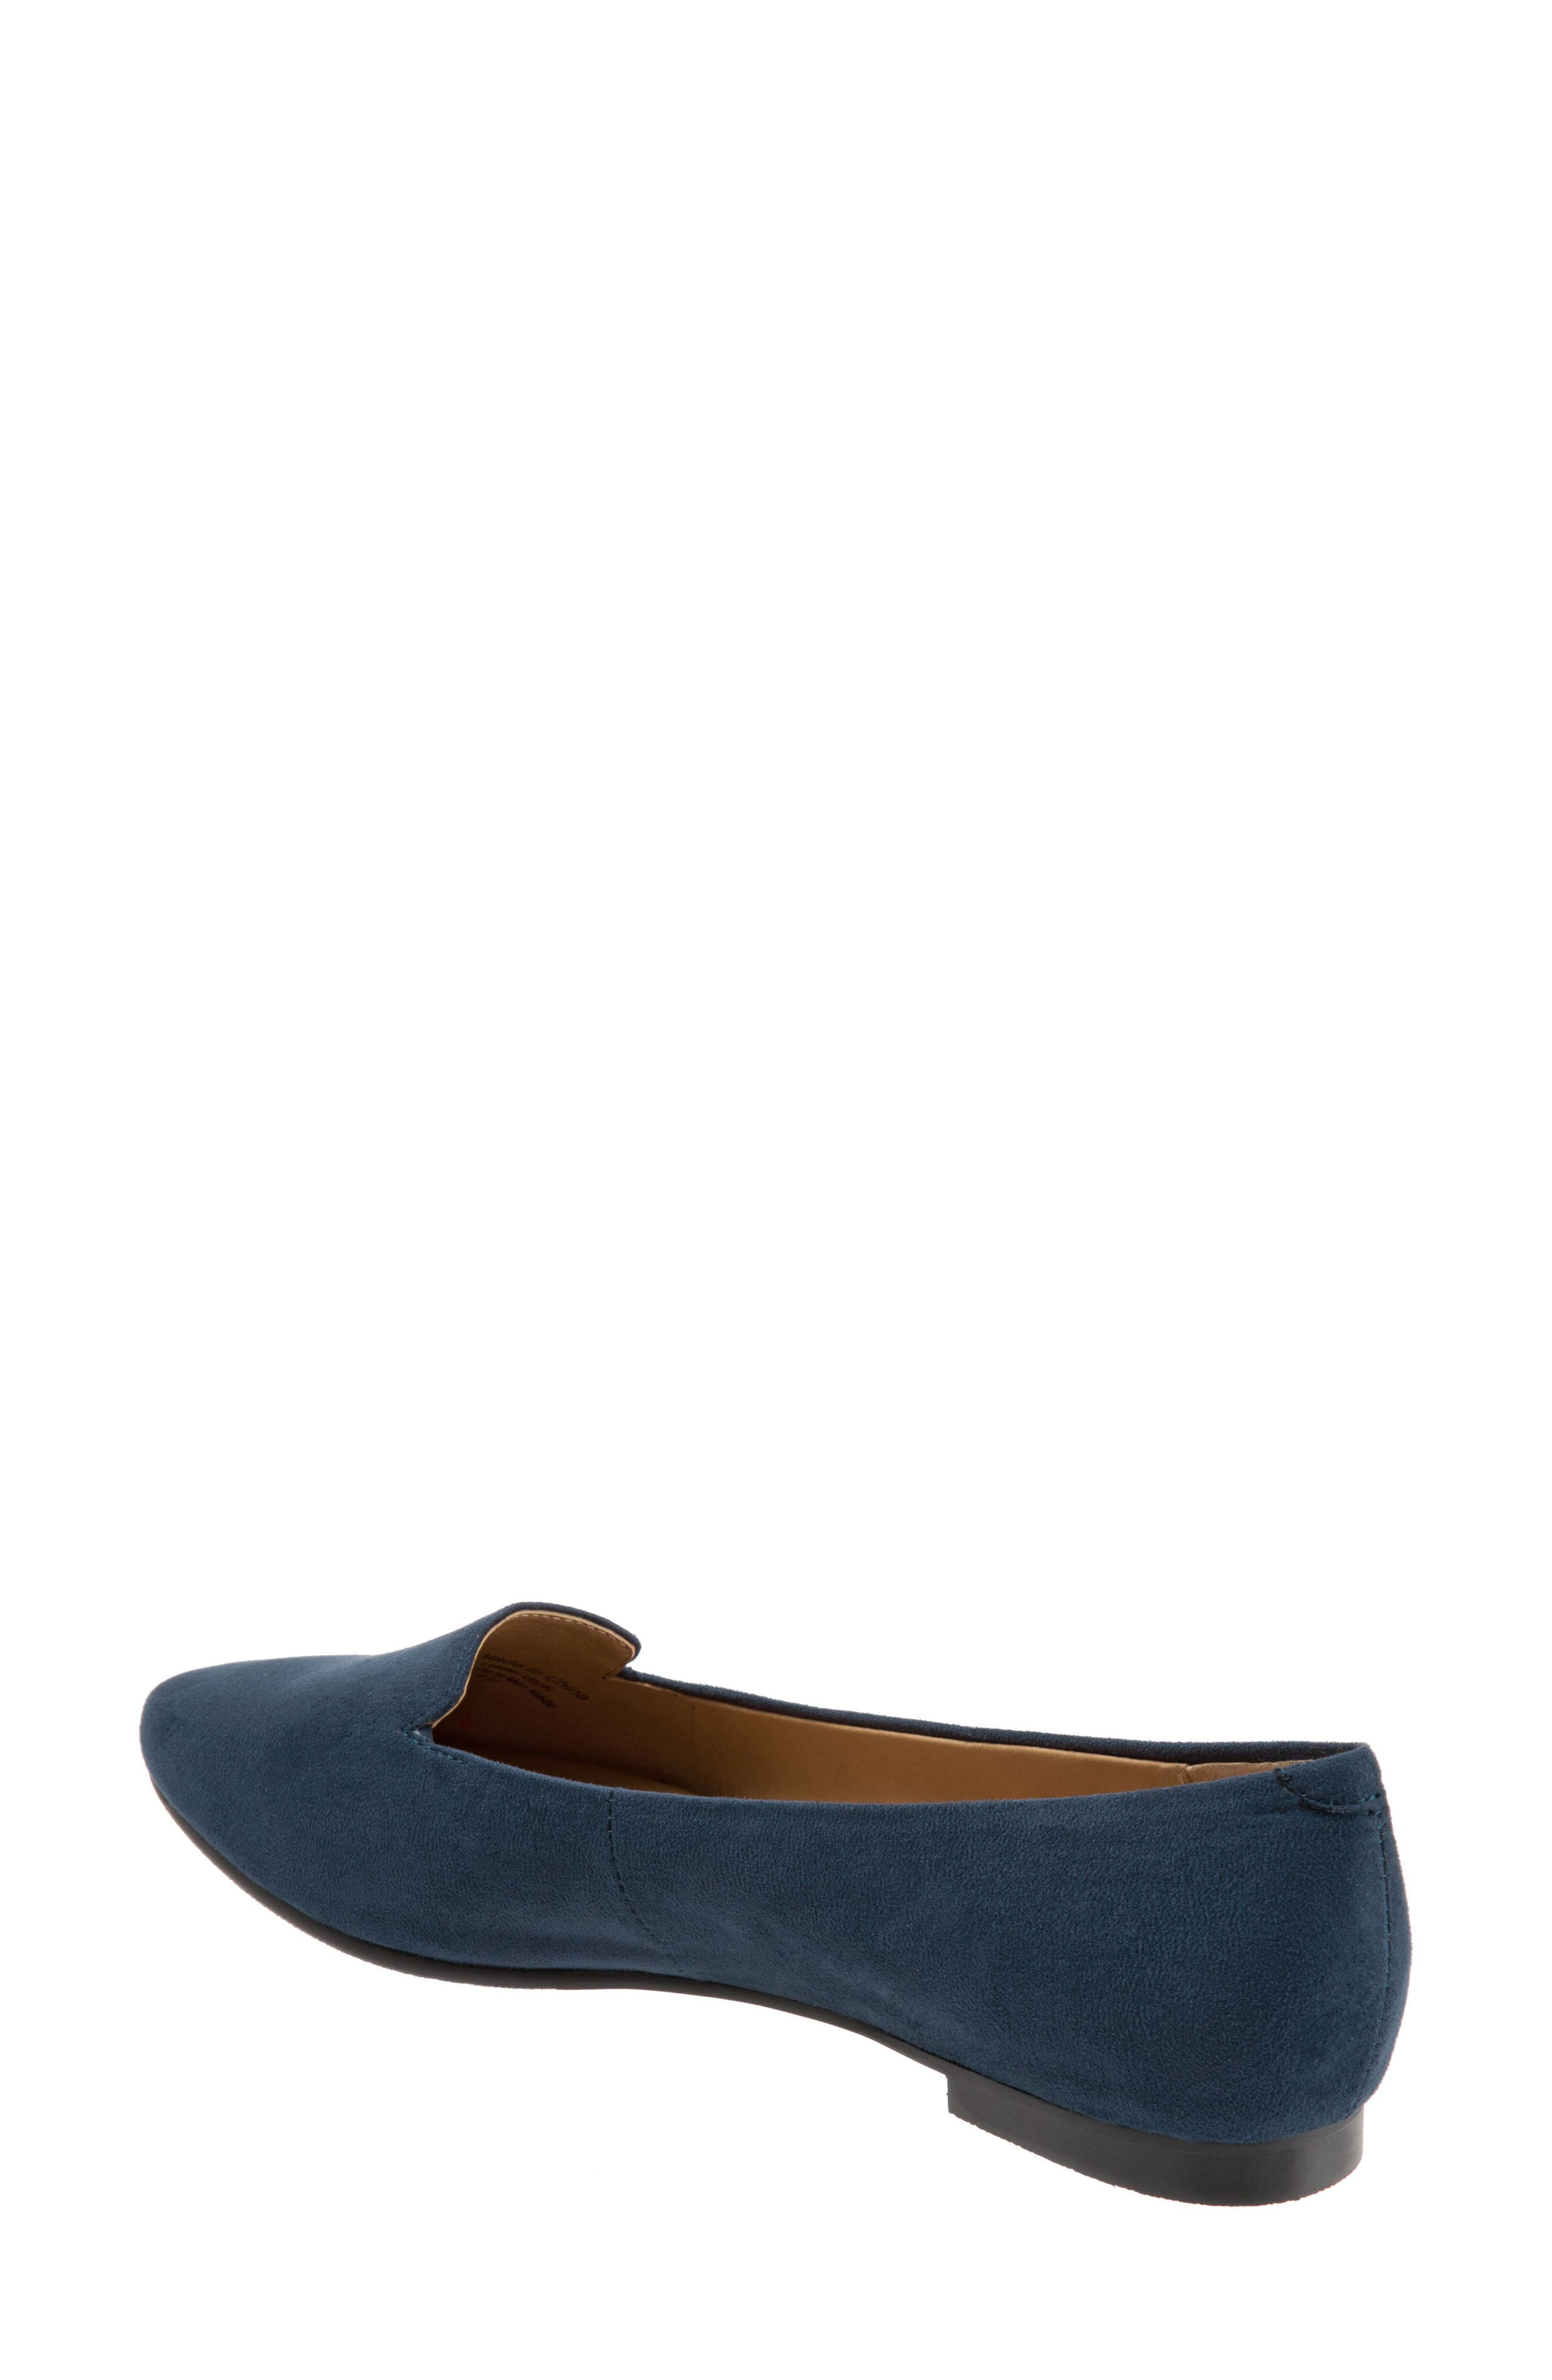 Harlowe Pointy Toe Loafer,                             Alternate thumbnail 2, color,                             Navy Leather